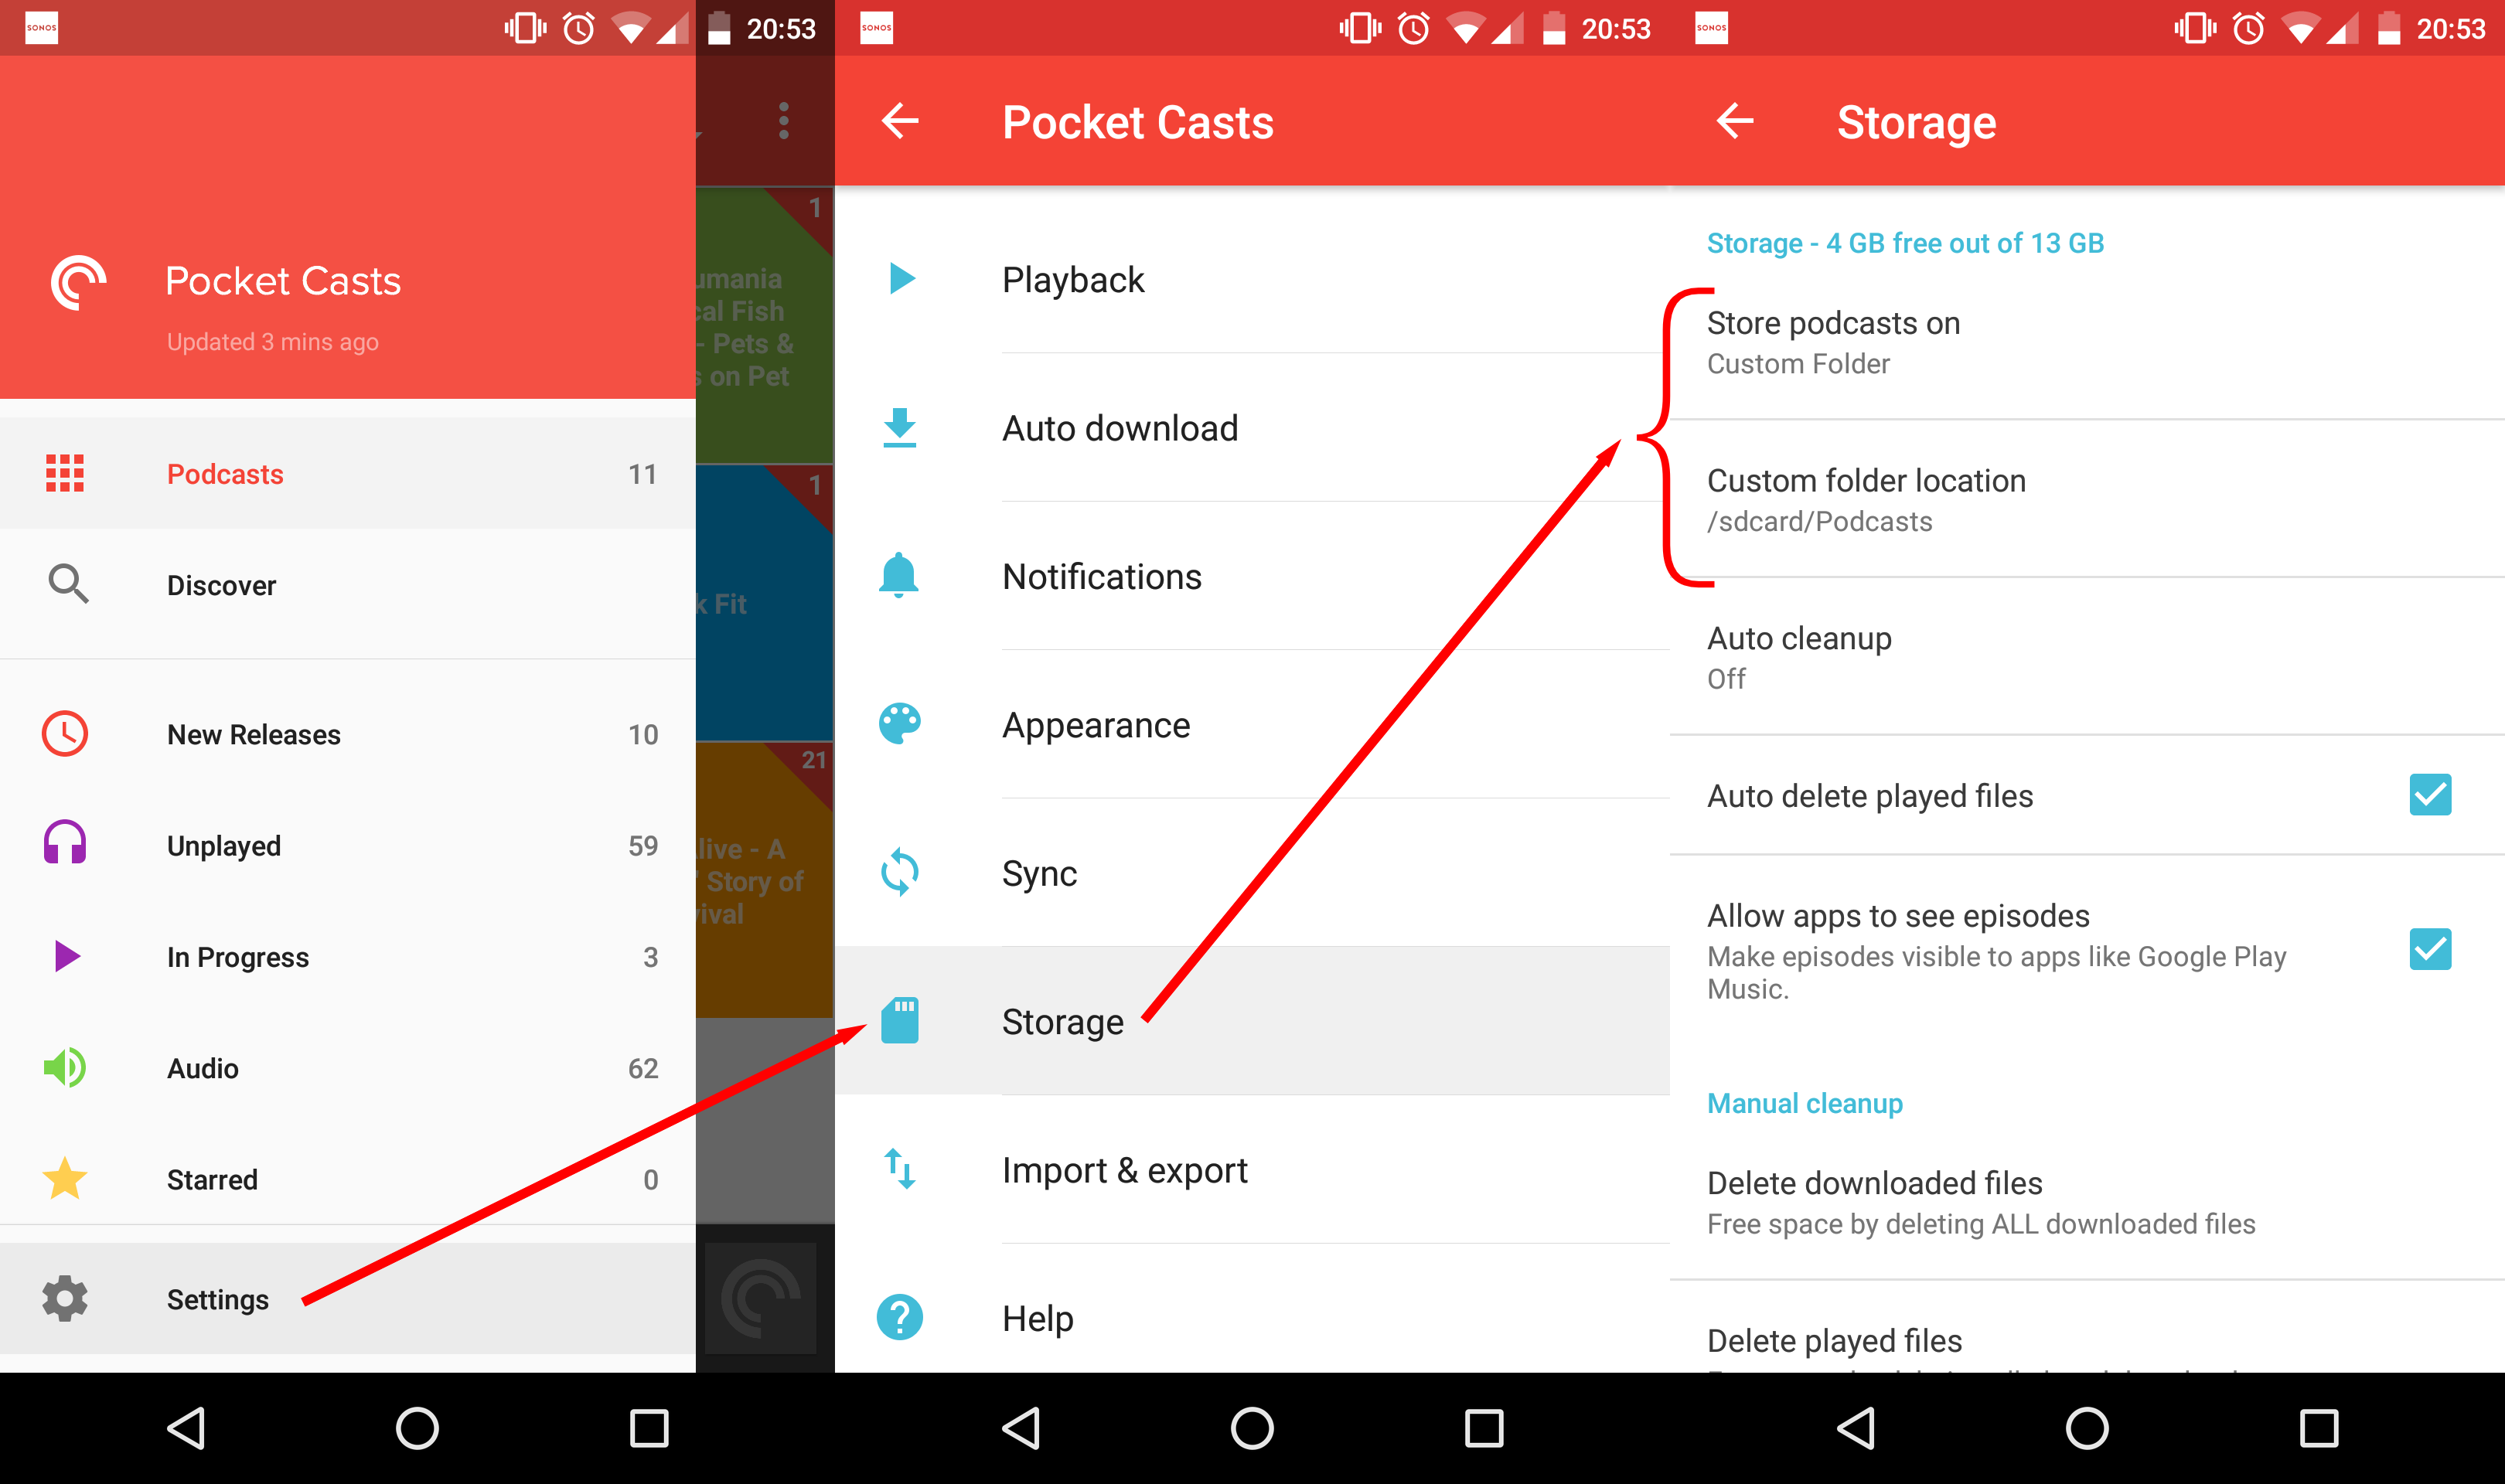 Pocket Casts settings for Sonos Podcasts